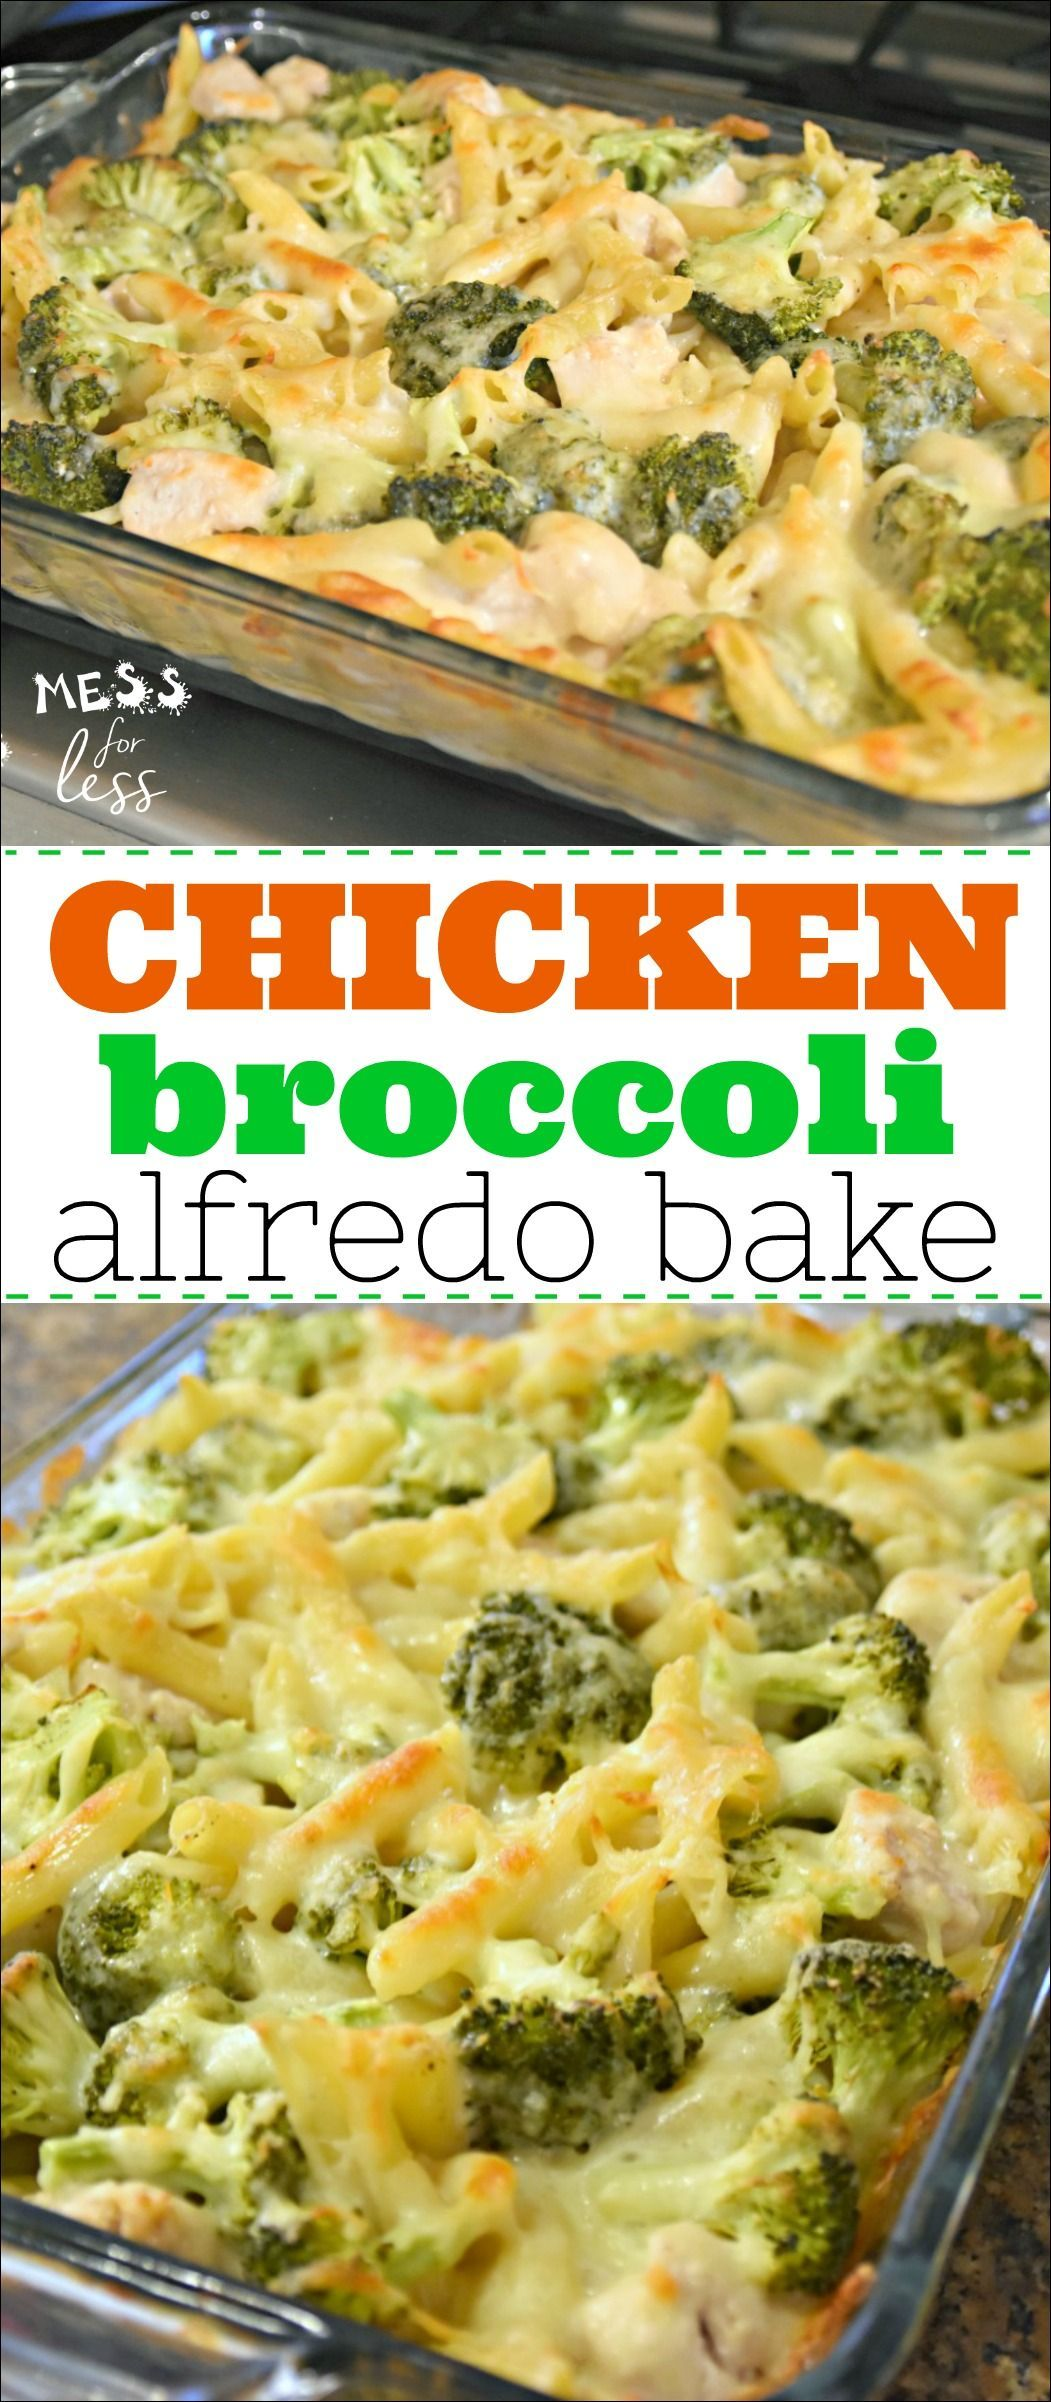 This Chicken Broccoli Alfredo Bake is a favorite in my family. It is simple and straightforward to make, as most comfort food is, and is a great way to get kids eating more protein and veggies. The creamy, cheesiness of this dish makes it a hit!